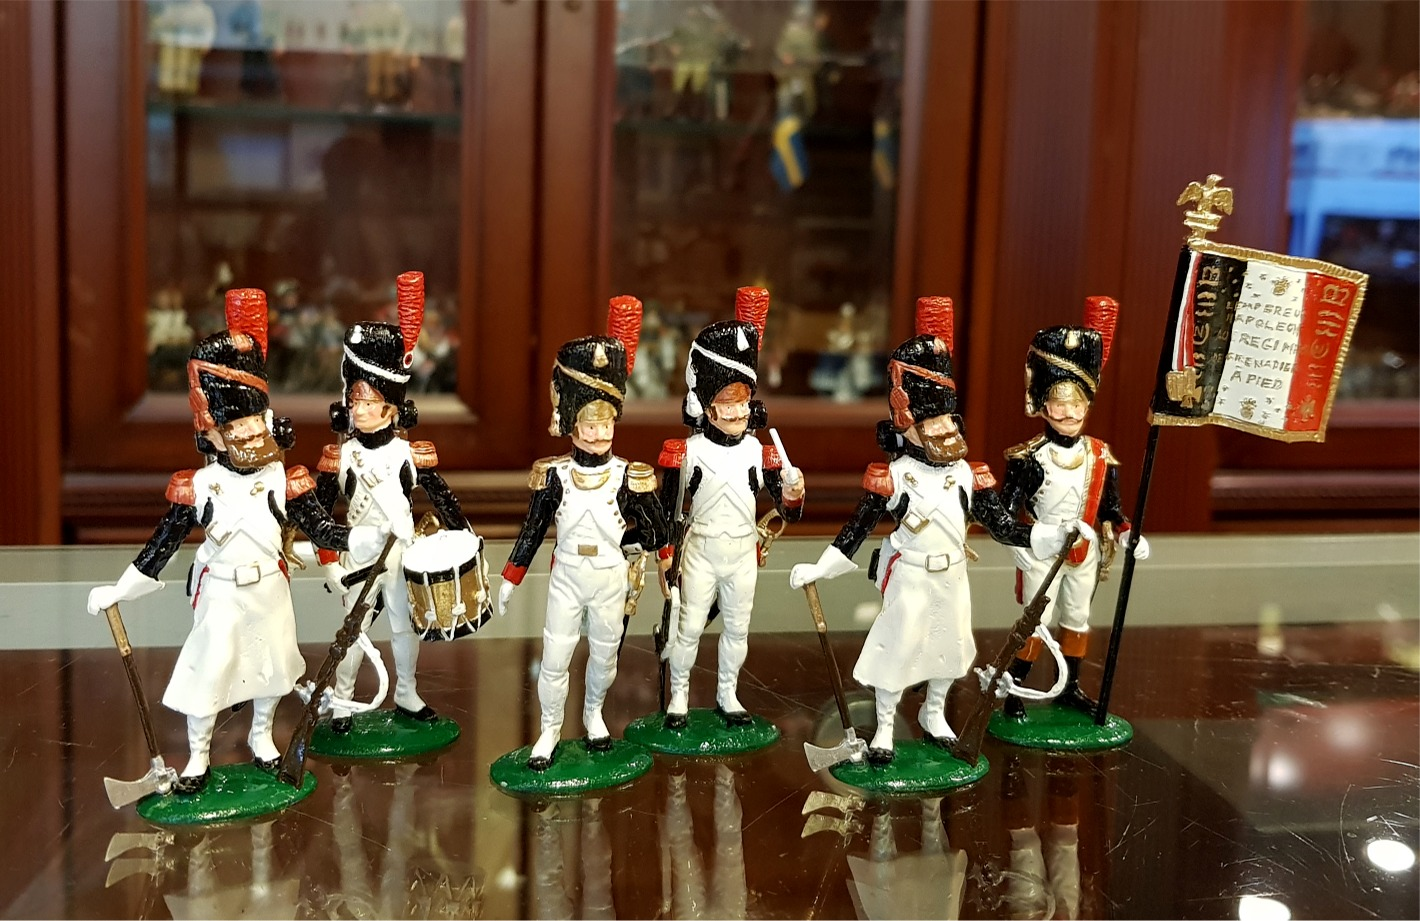 Garde Grenadiers Full Dress 1804-1815 - The French Army